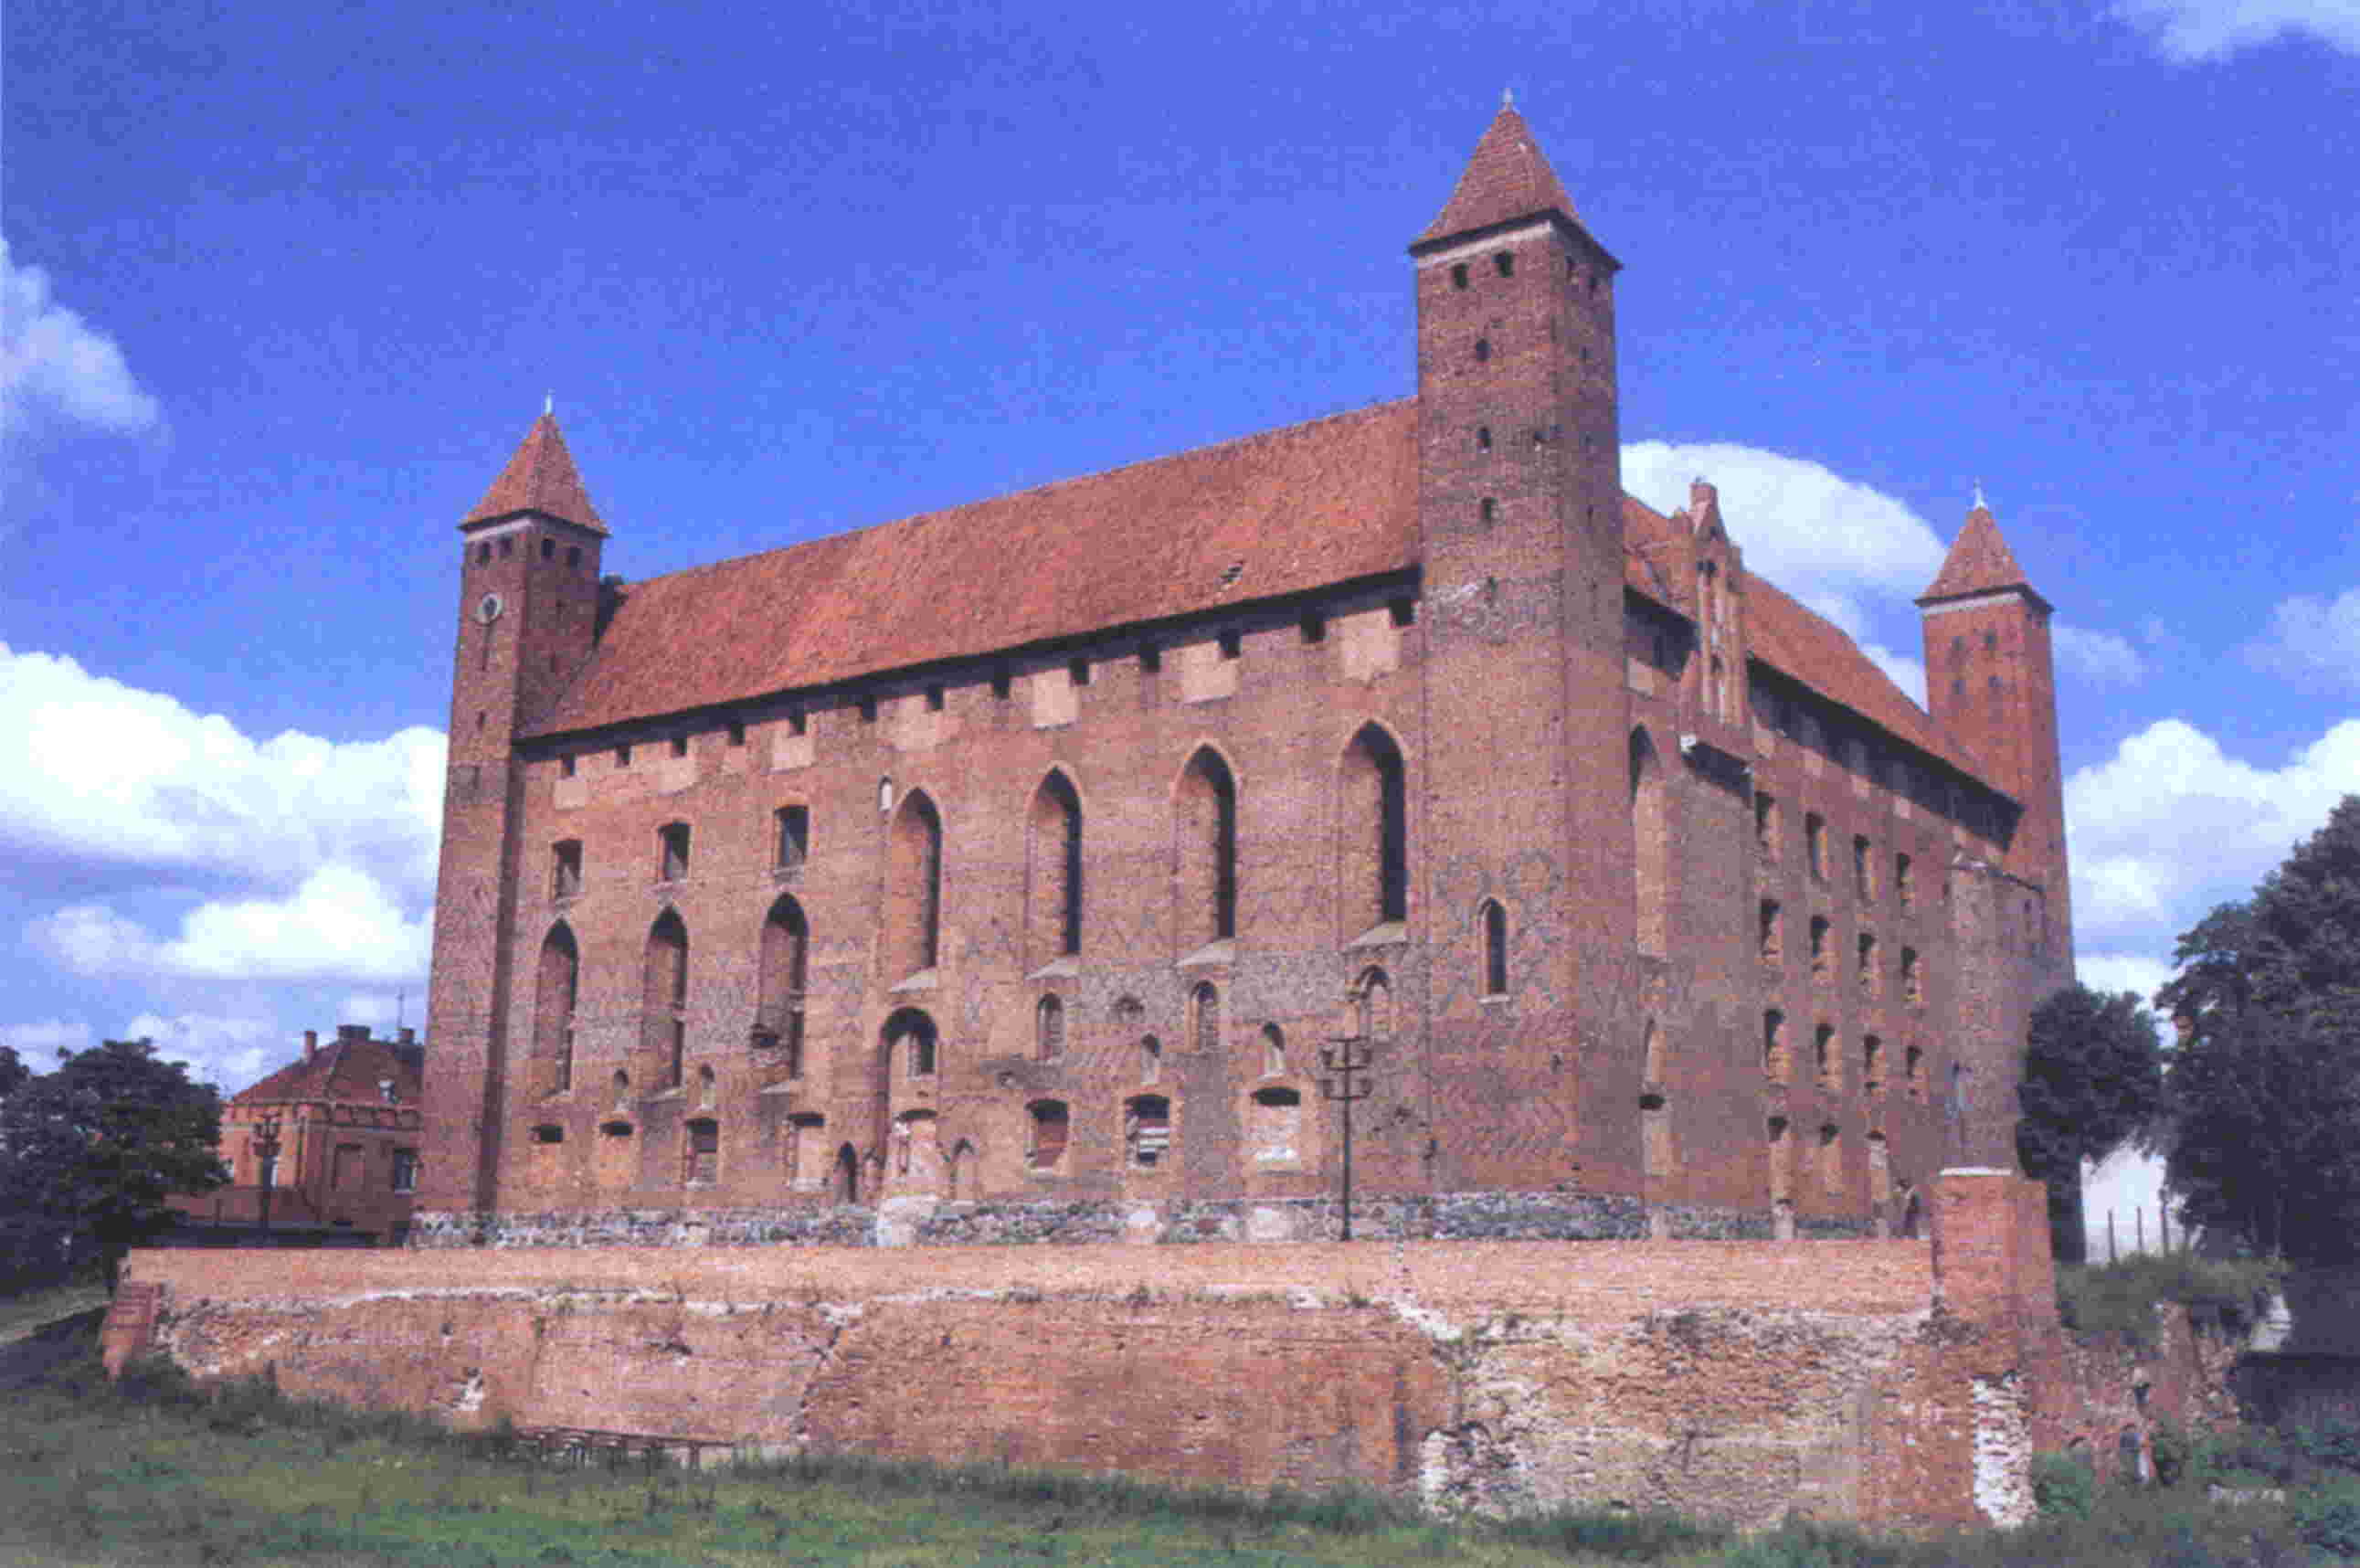 Gniew Castle Backgrounds on Wallpapers Vista